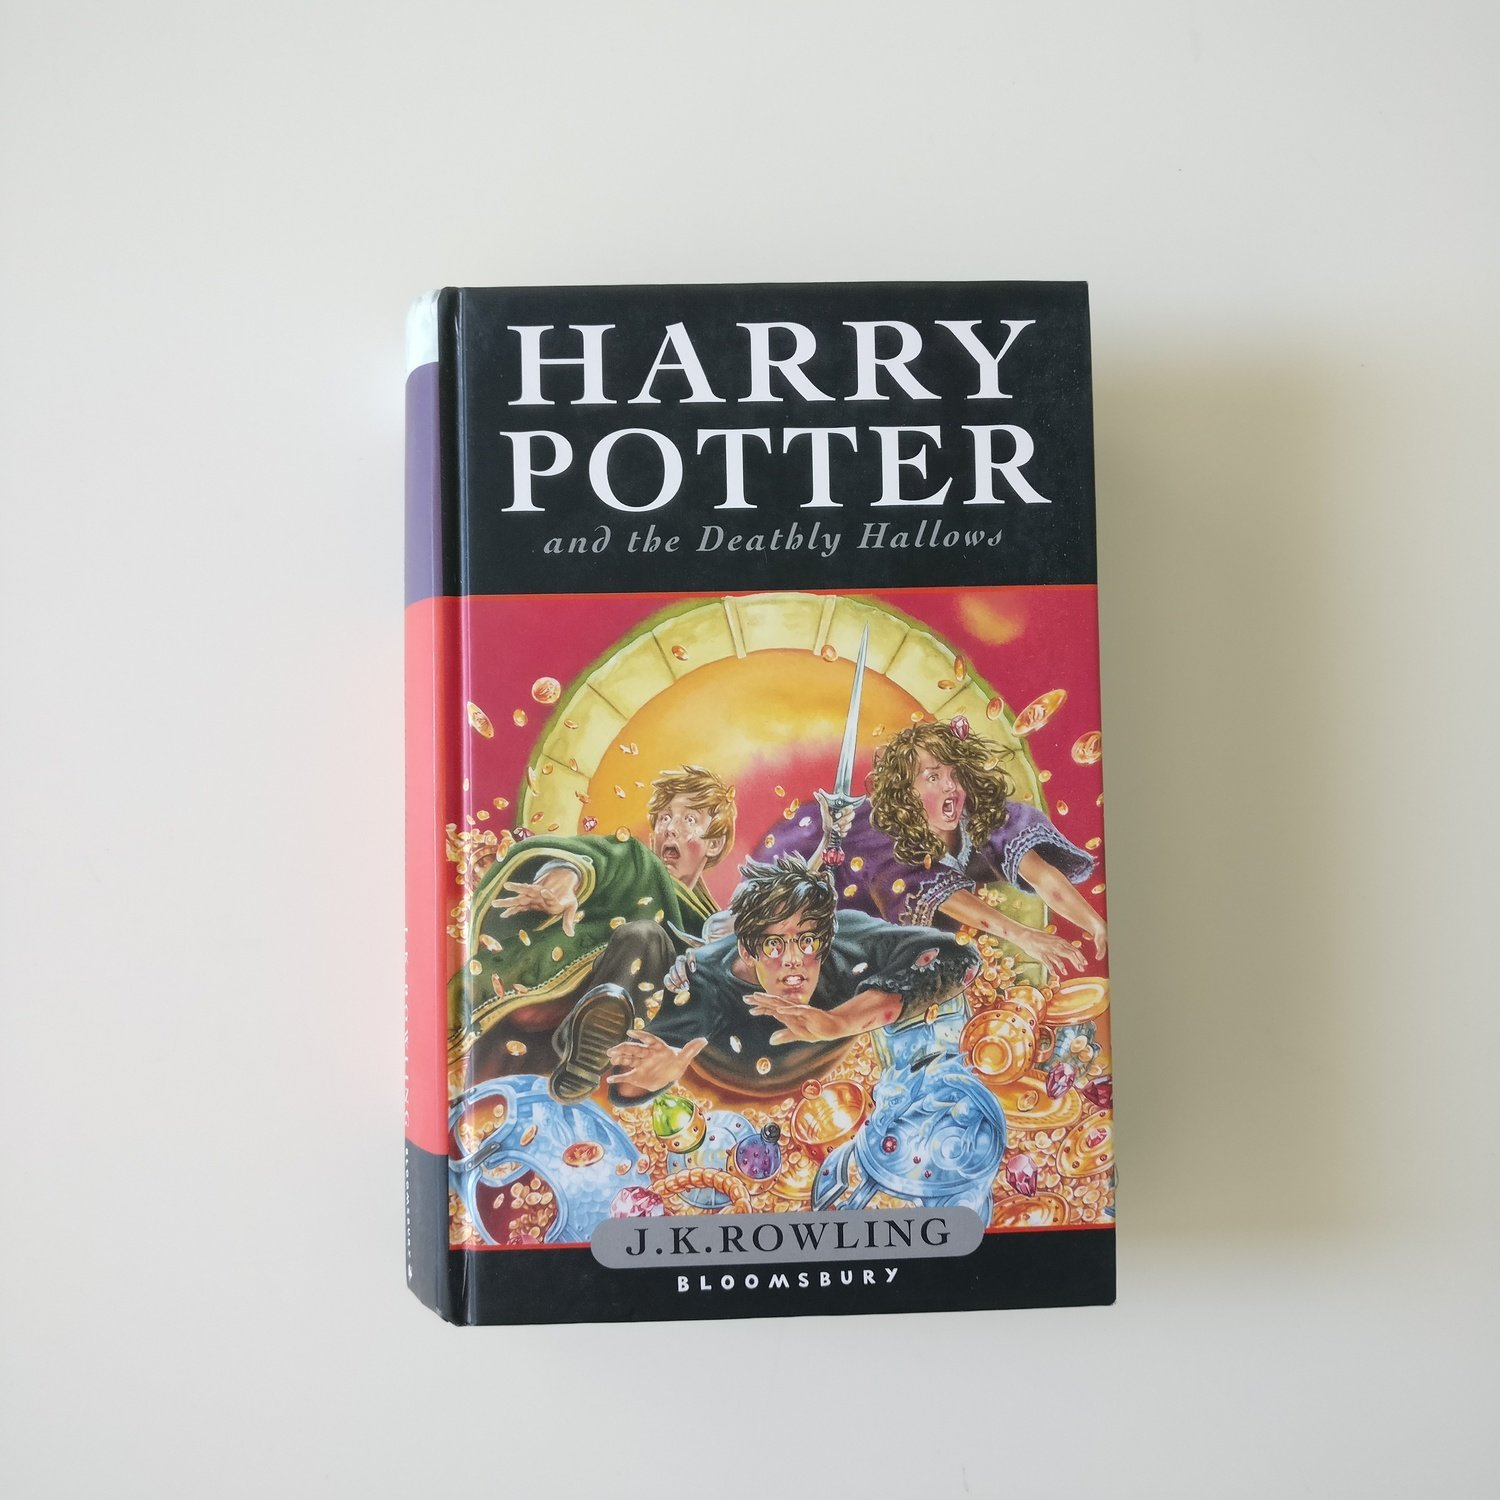 Harry Potter and the Deathly Hallows - made from a dust jacket